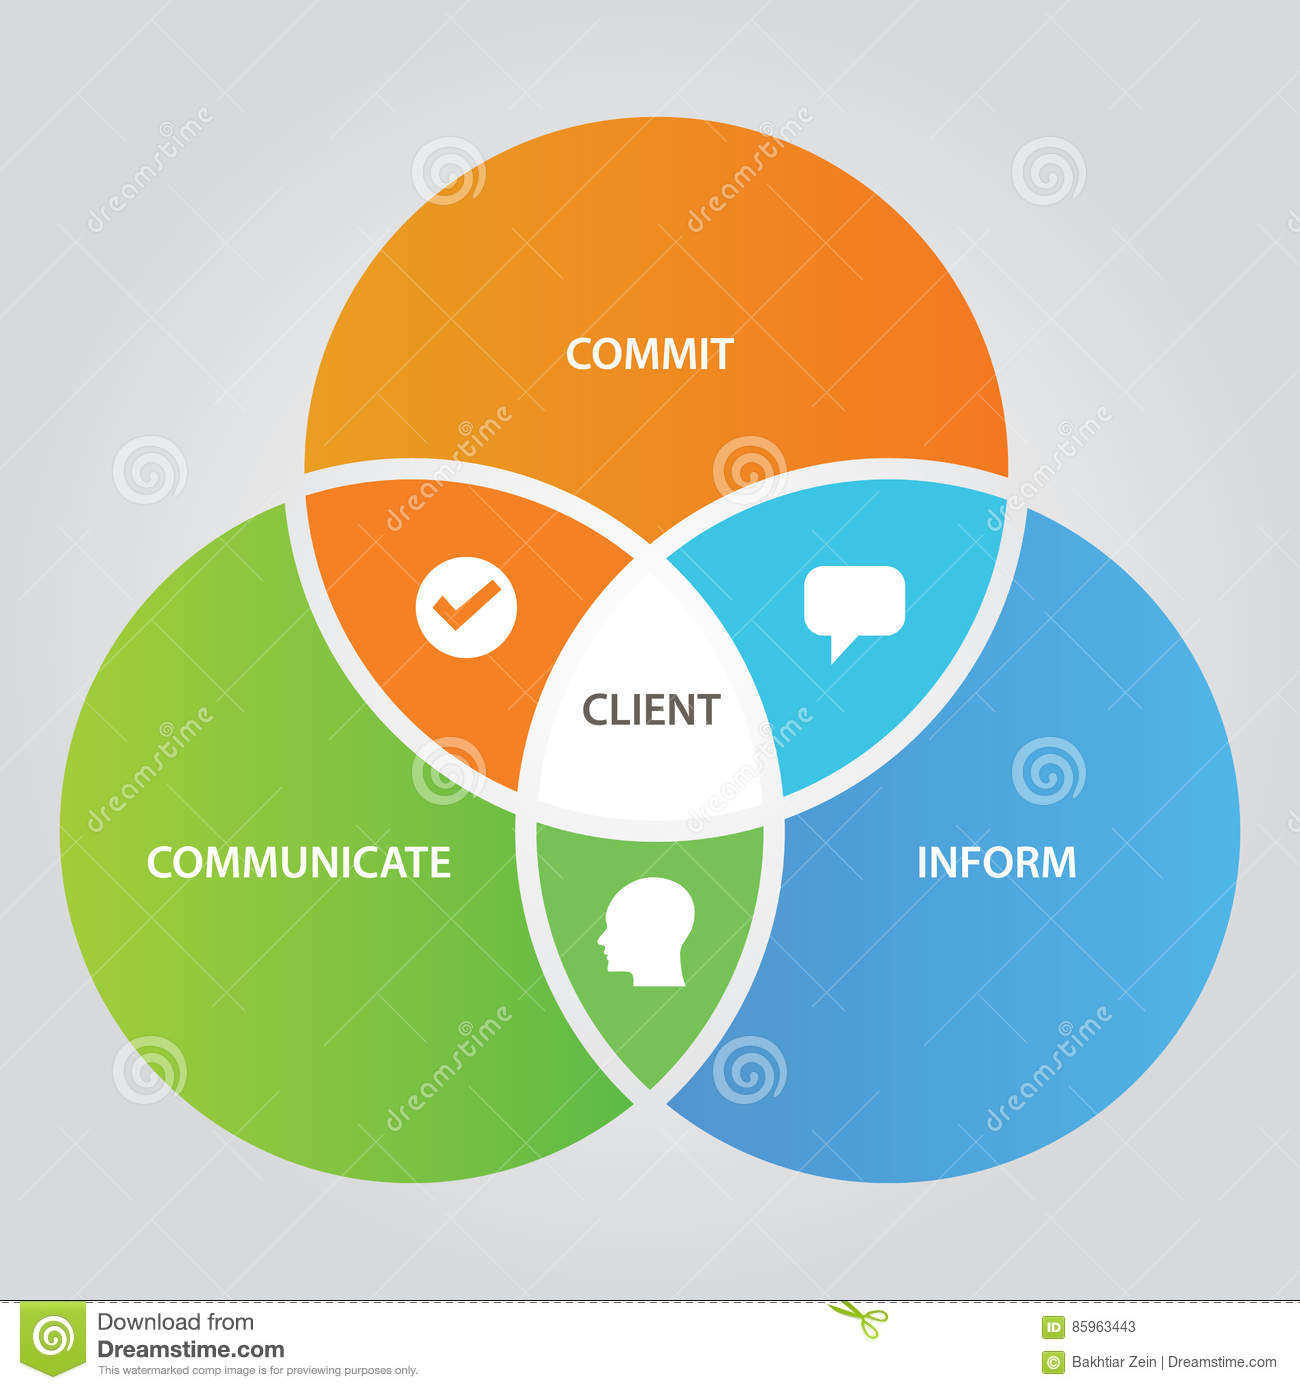 free venn diagram template 2 circles 96 honda civic ecu wiring client relationship business concept of communication with customer three circle overlap stock ...